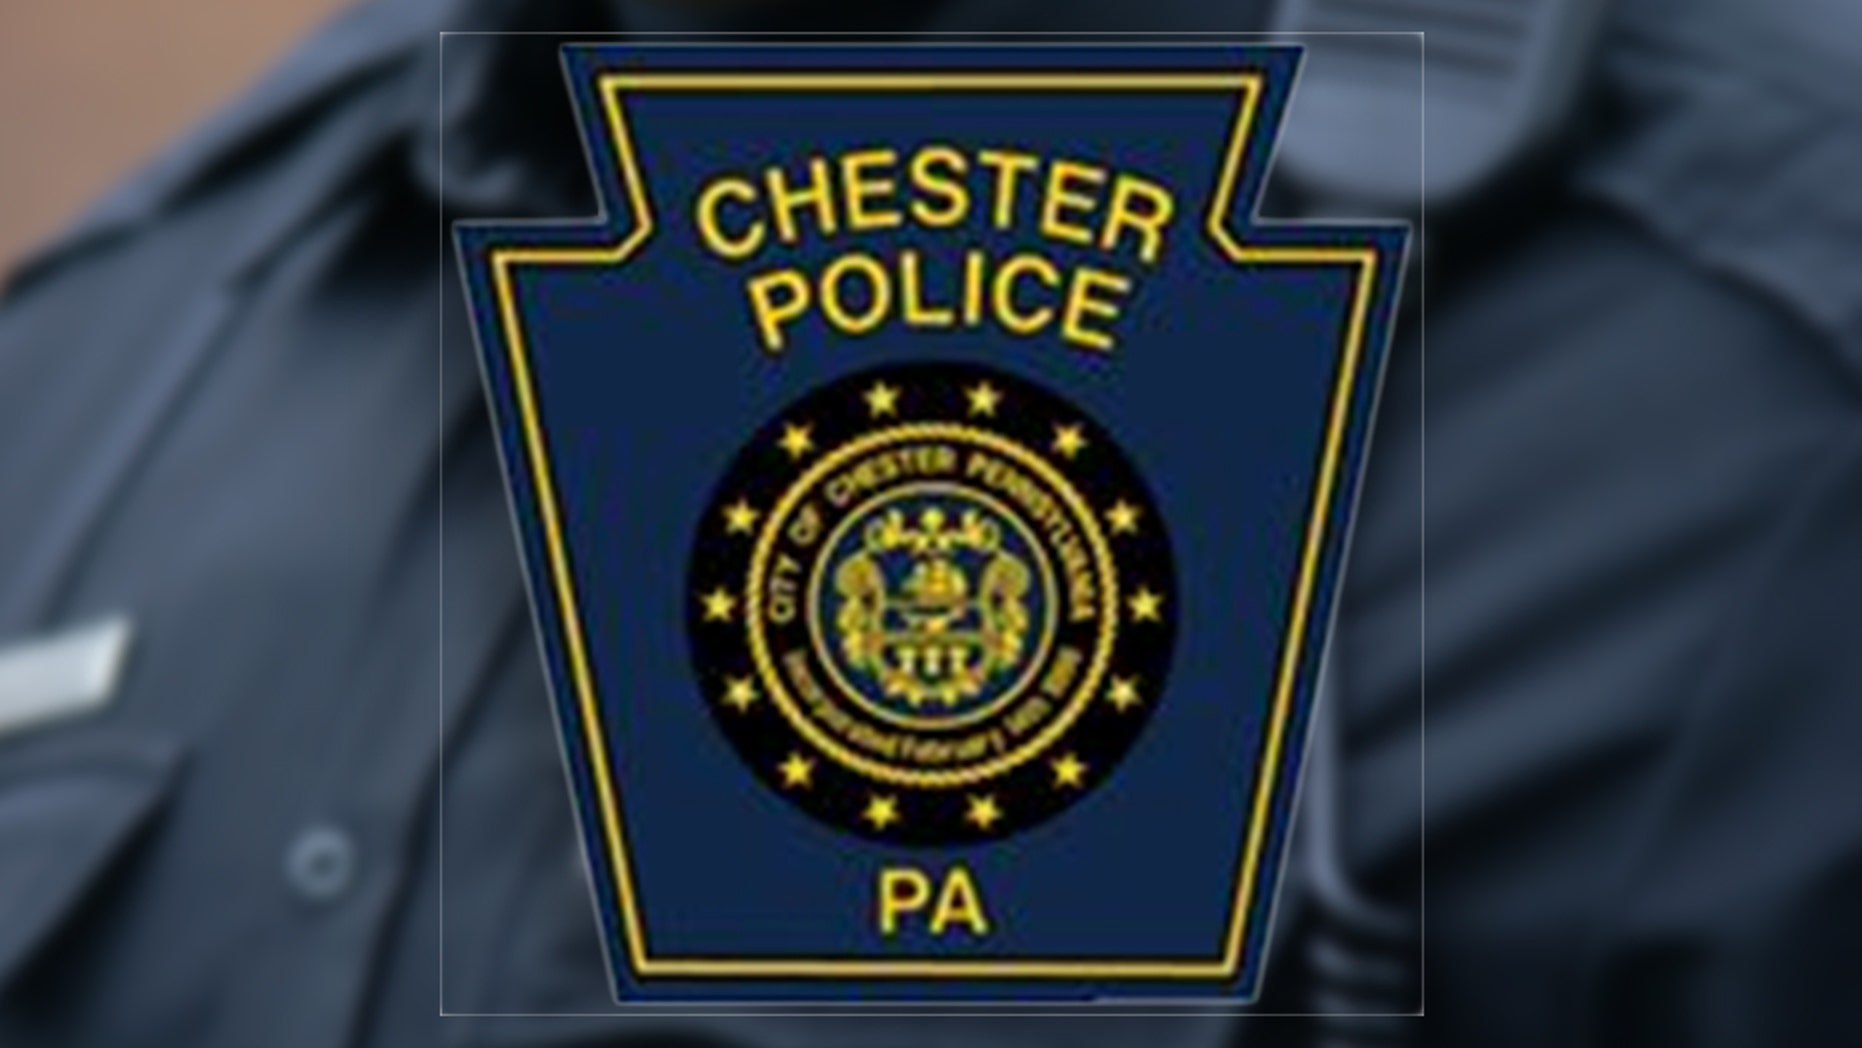 The Chester Police Department says it is reviewing a video showing one of its officers striking a woman during an arrest.